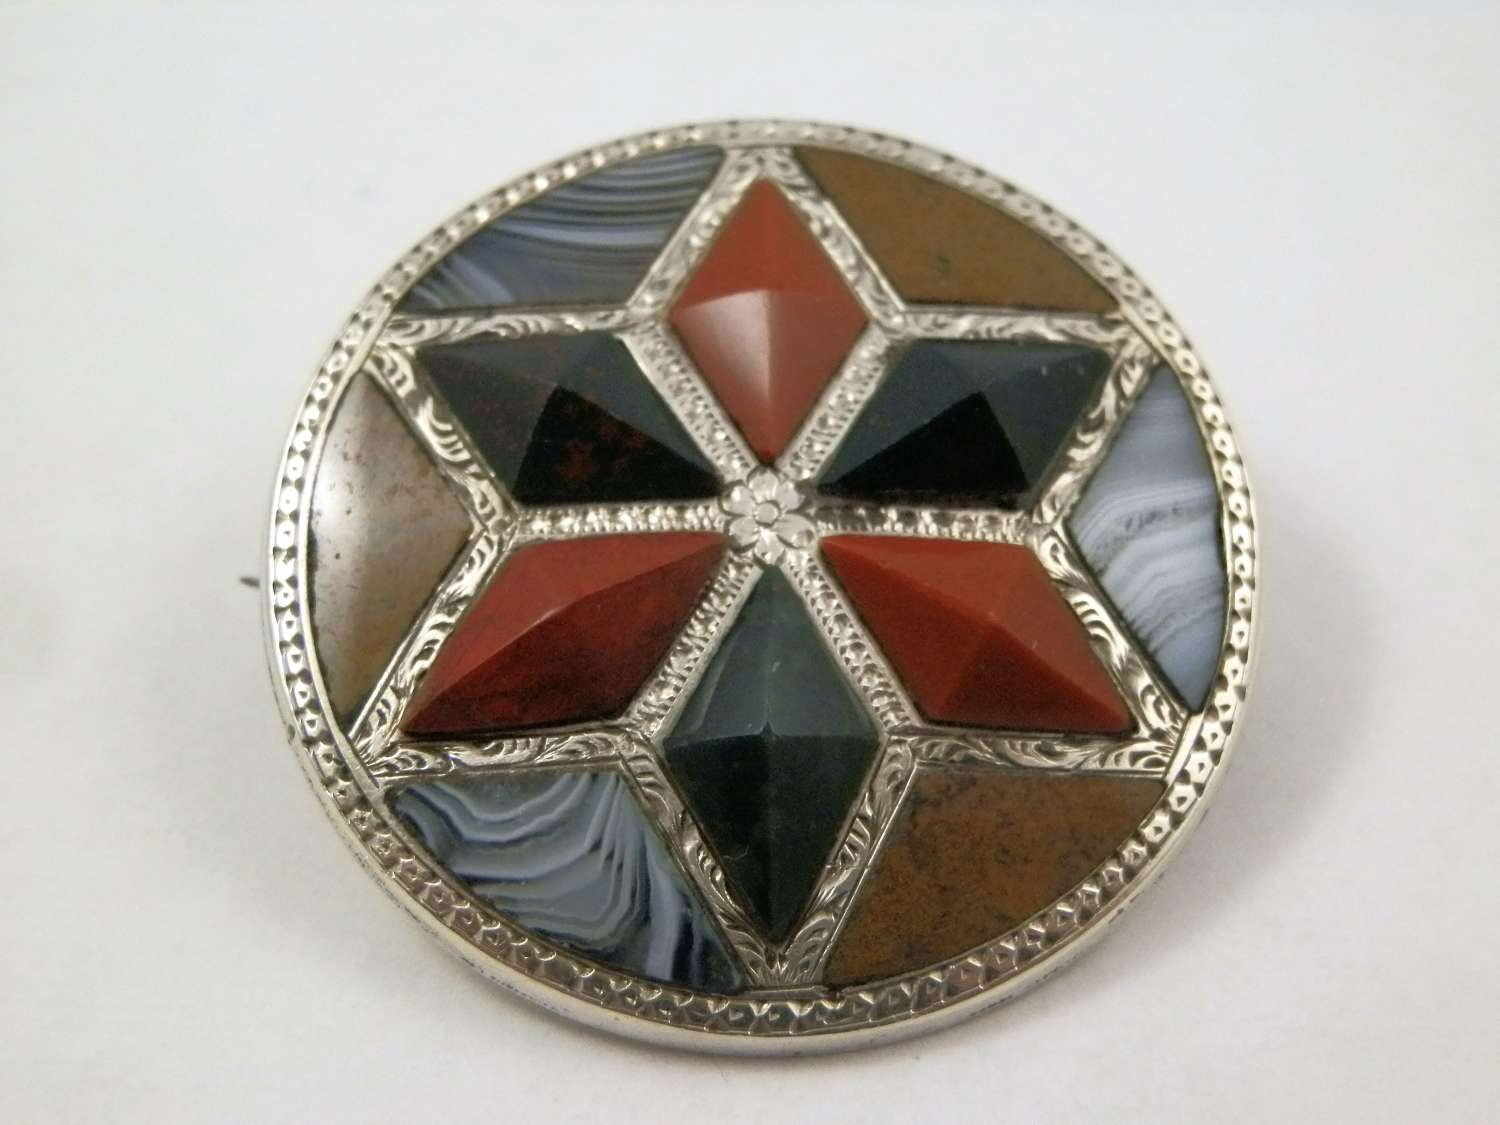 Victorian agate and silver brooch, c.1880